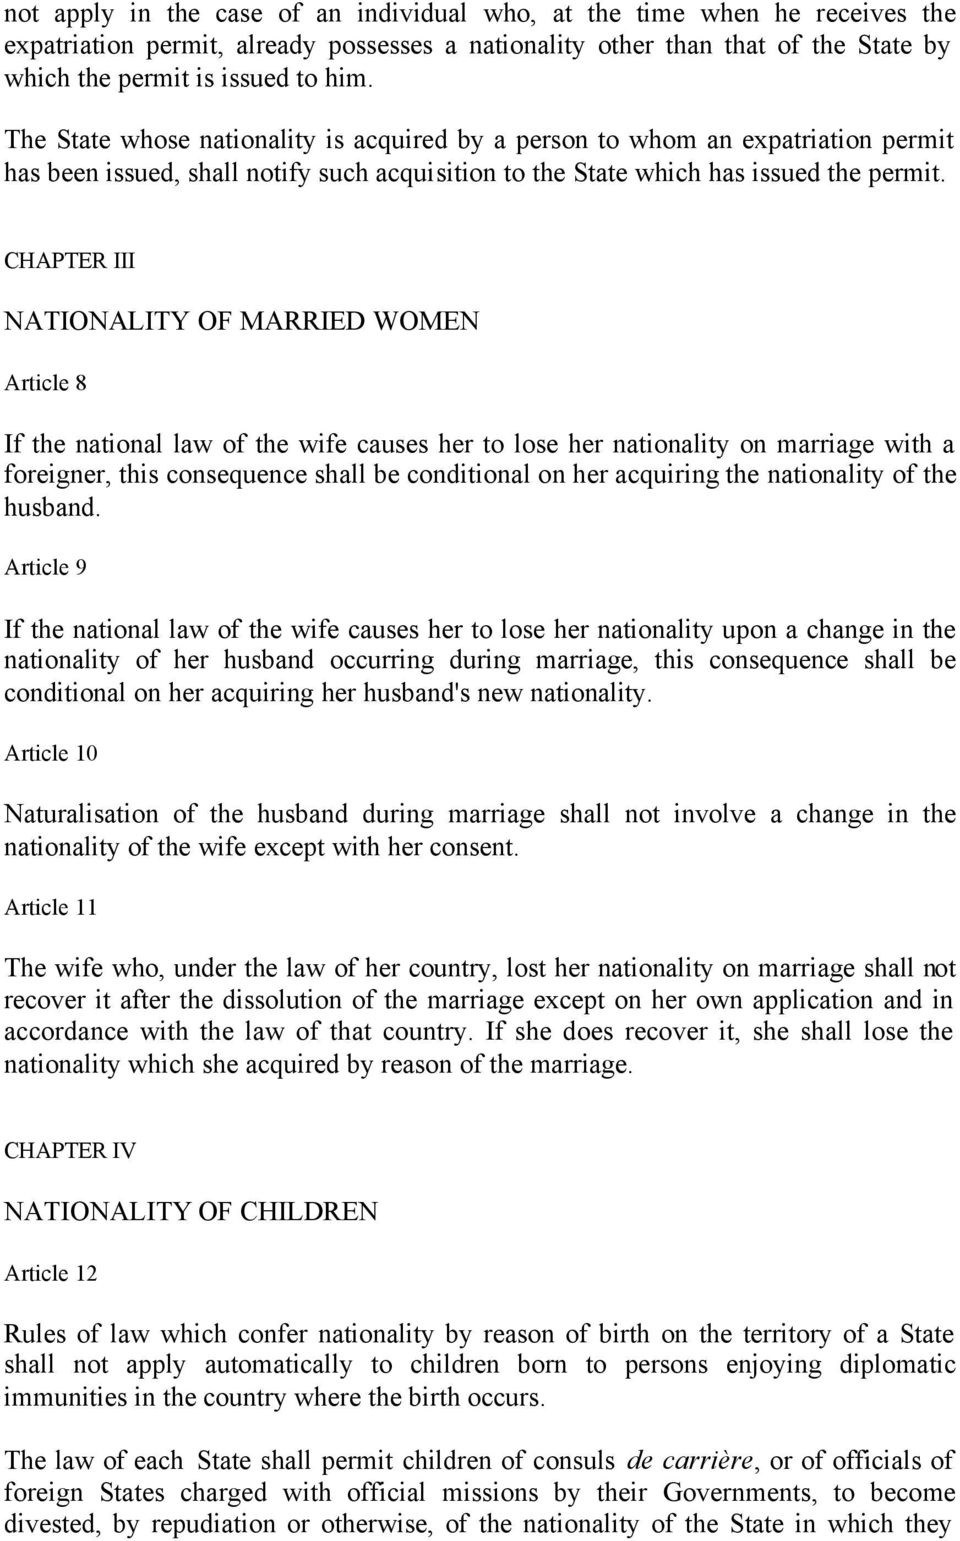 CHAPTER III NATIONALITY OF MARRIED WOMEN Article 8 If the national law of the wife causes her to lose her nationality on marriage with a foreigner, this consequence shall be conditional on her